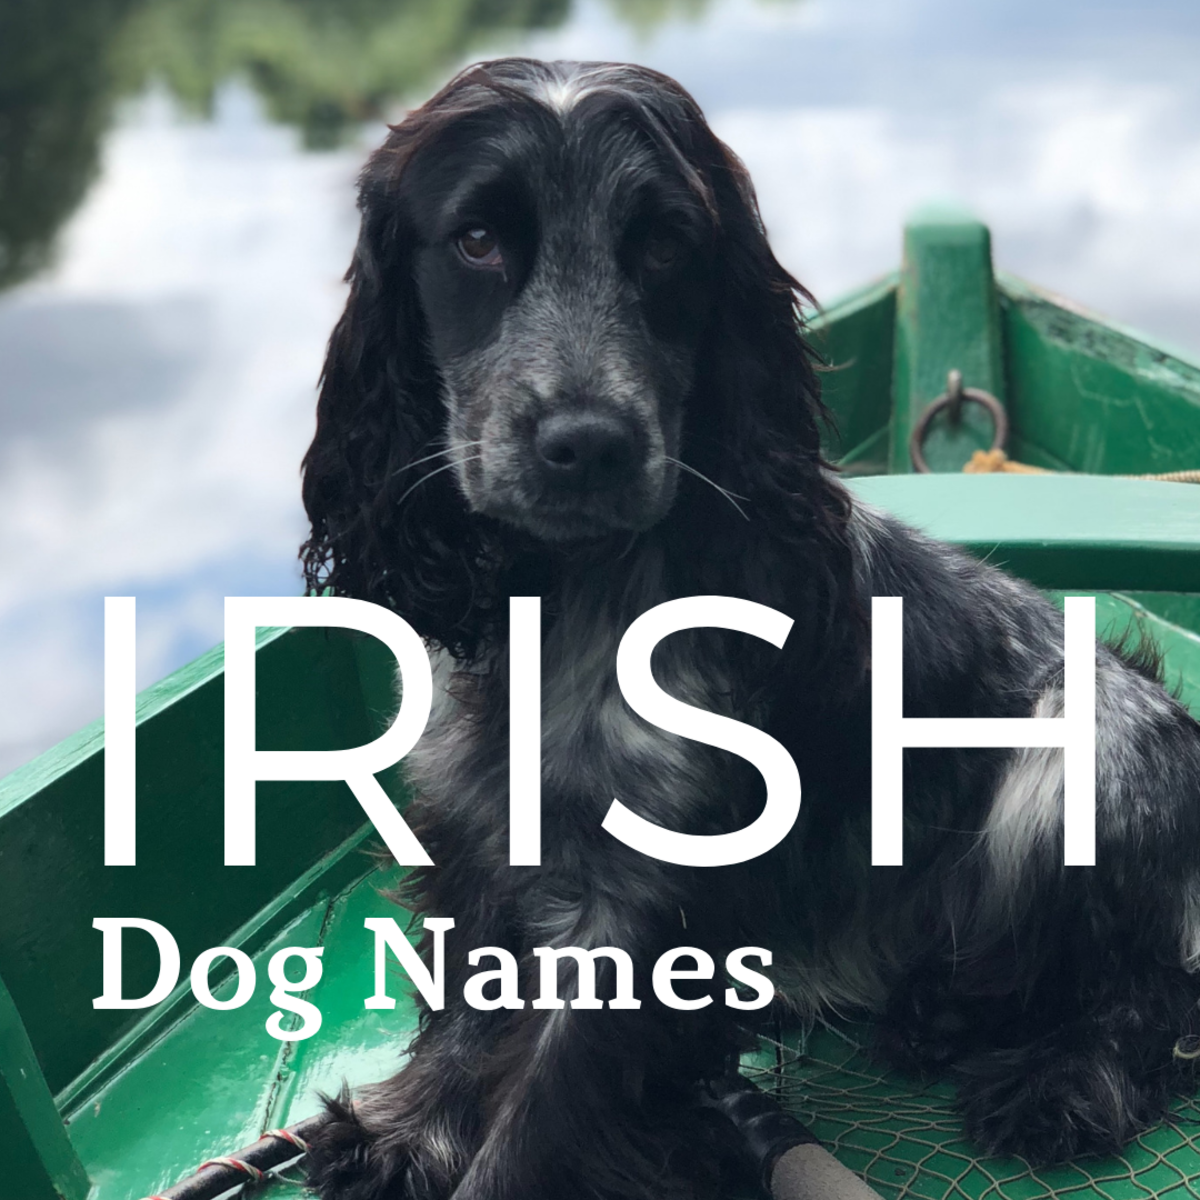 Irish names are magical, mystical, and beautiful.